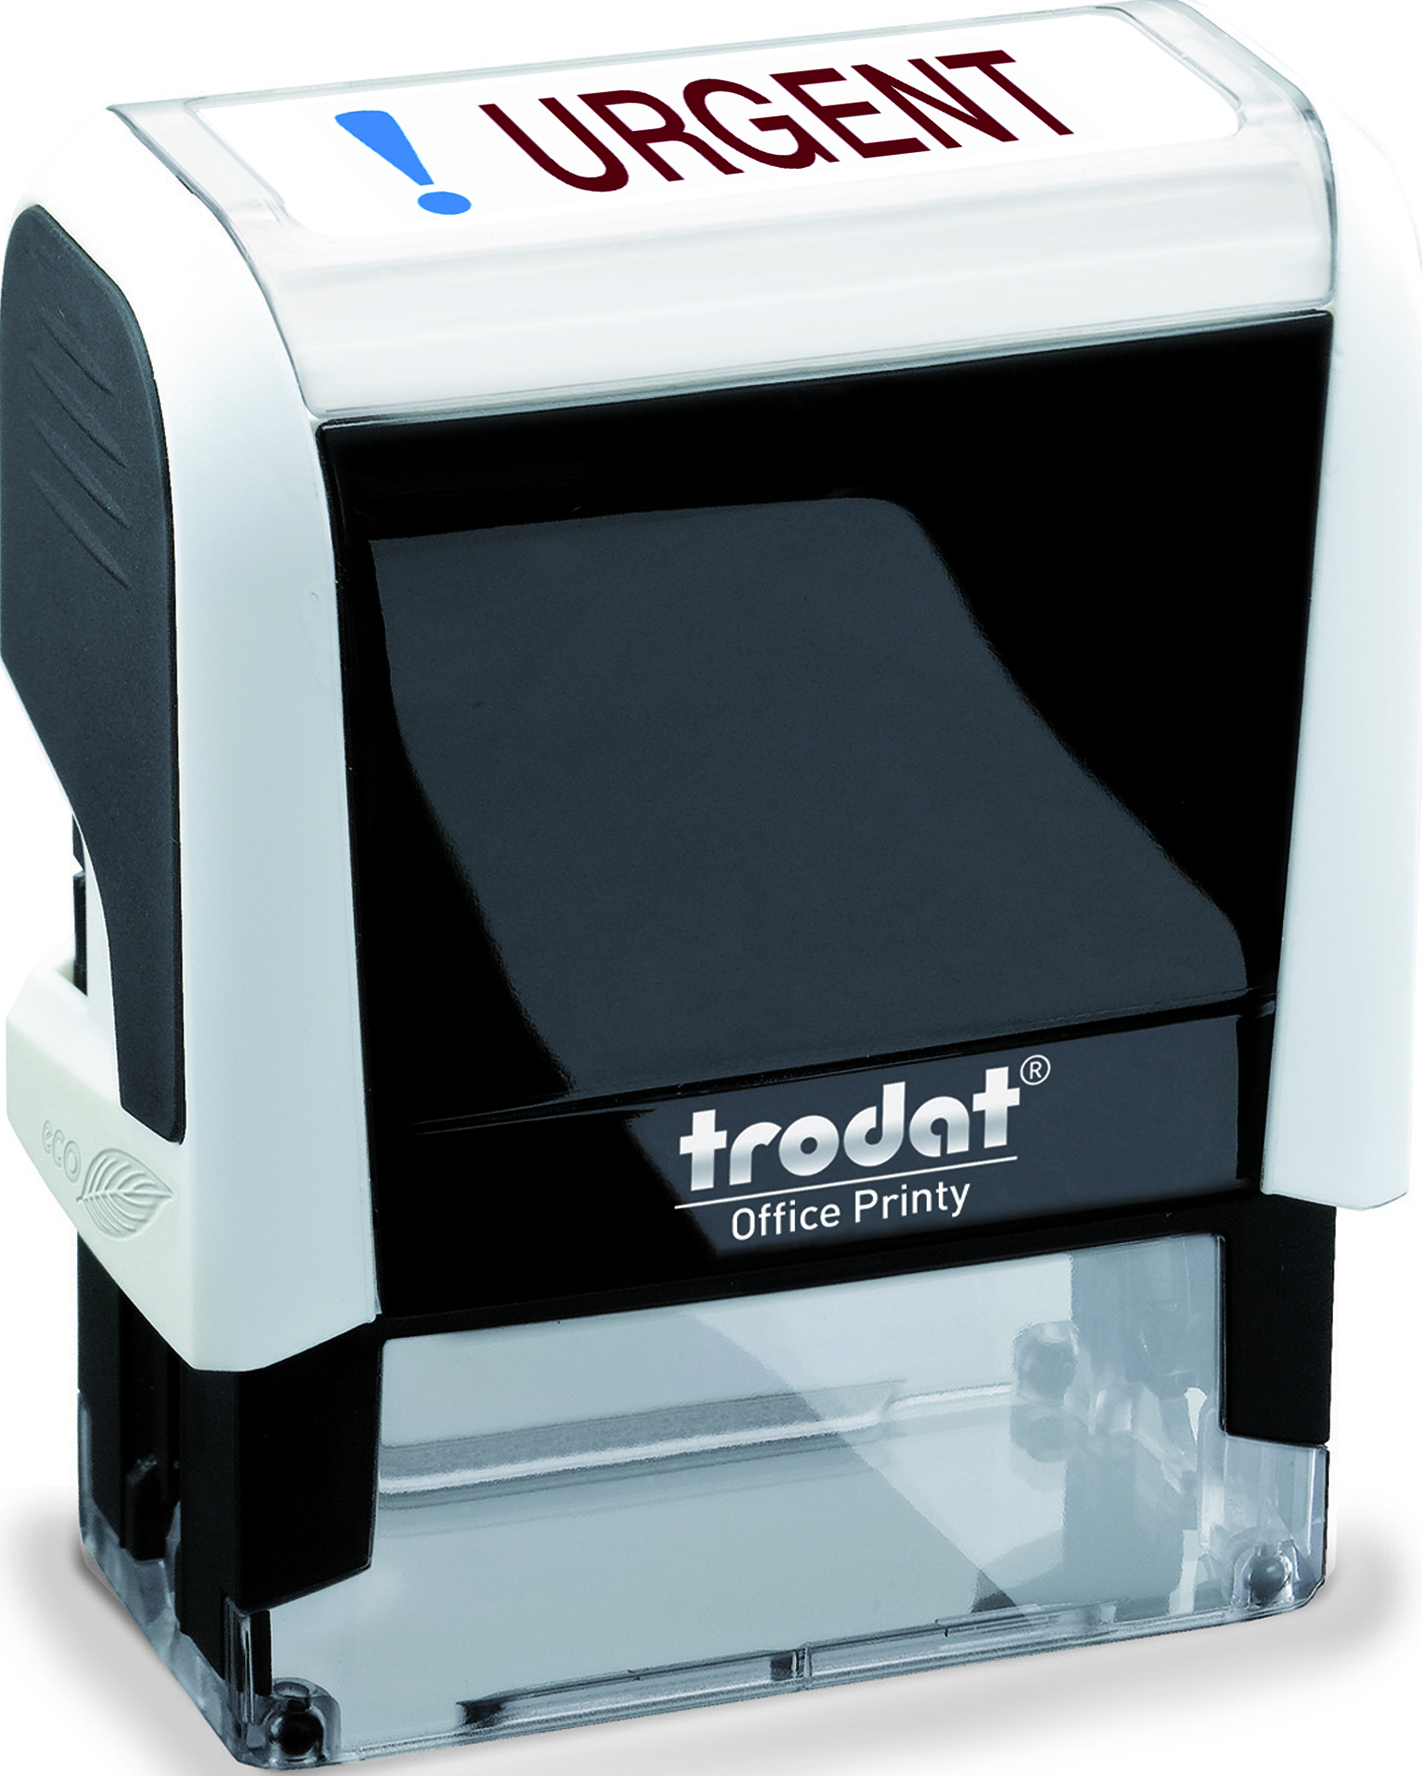 Trodat Office Printy 4912 White URGENT